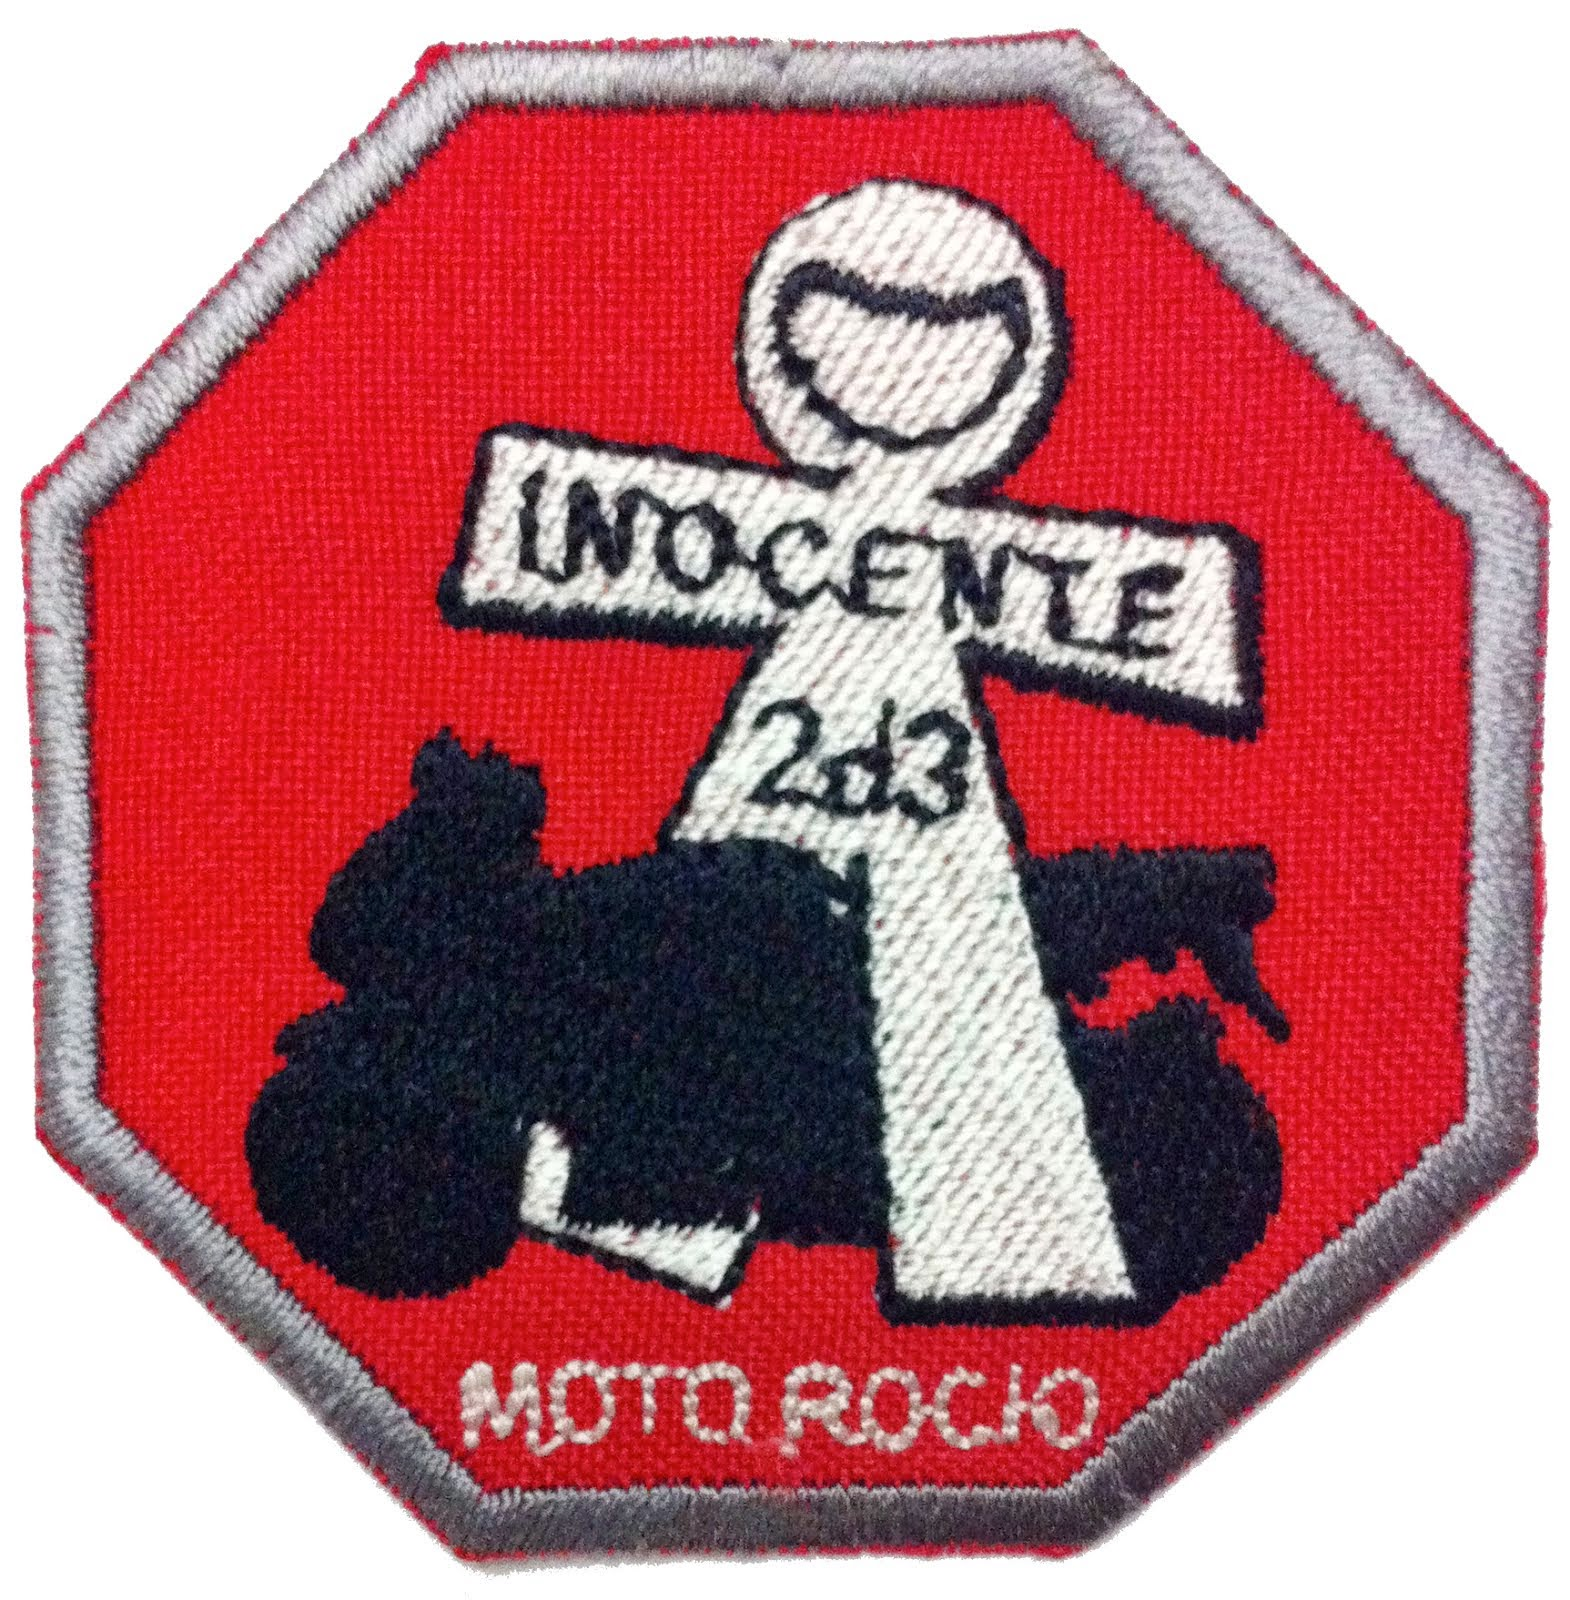 La Moto INOCENTE en 2 d 3 accidentes